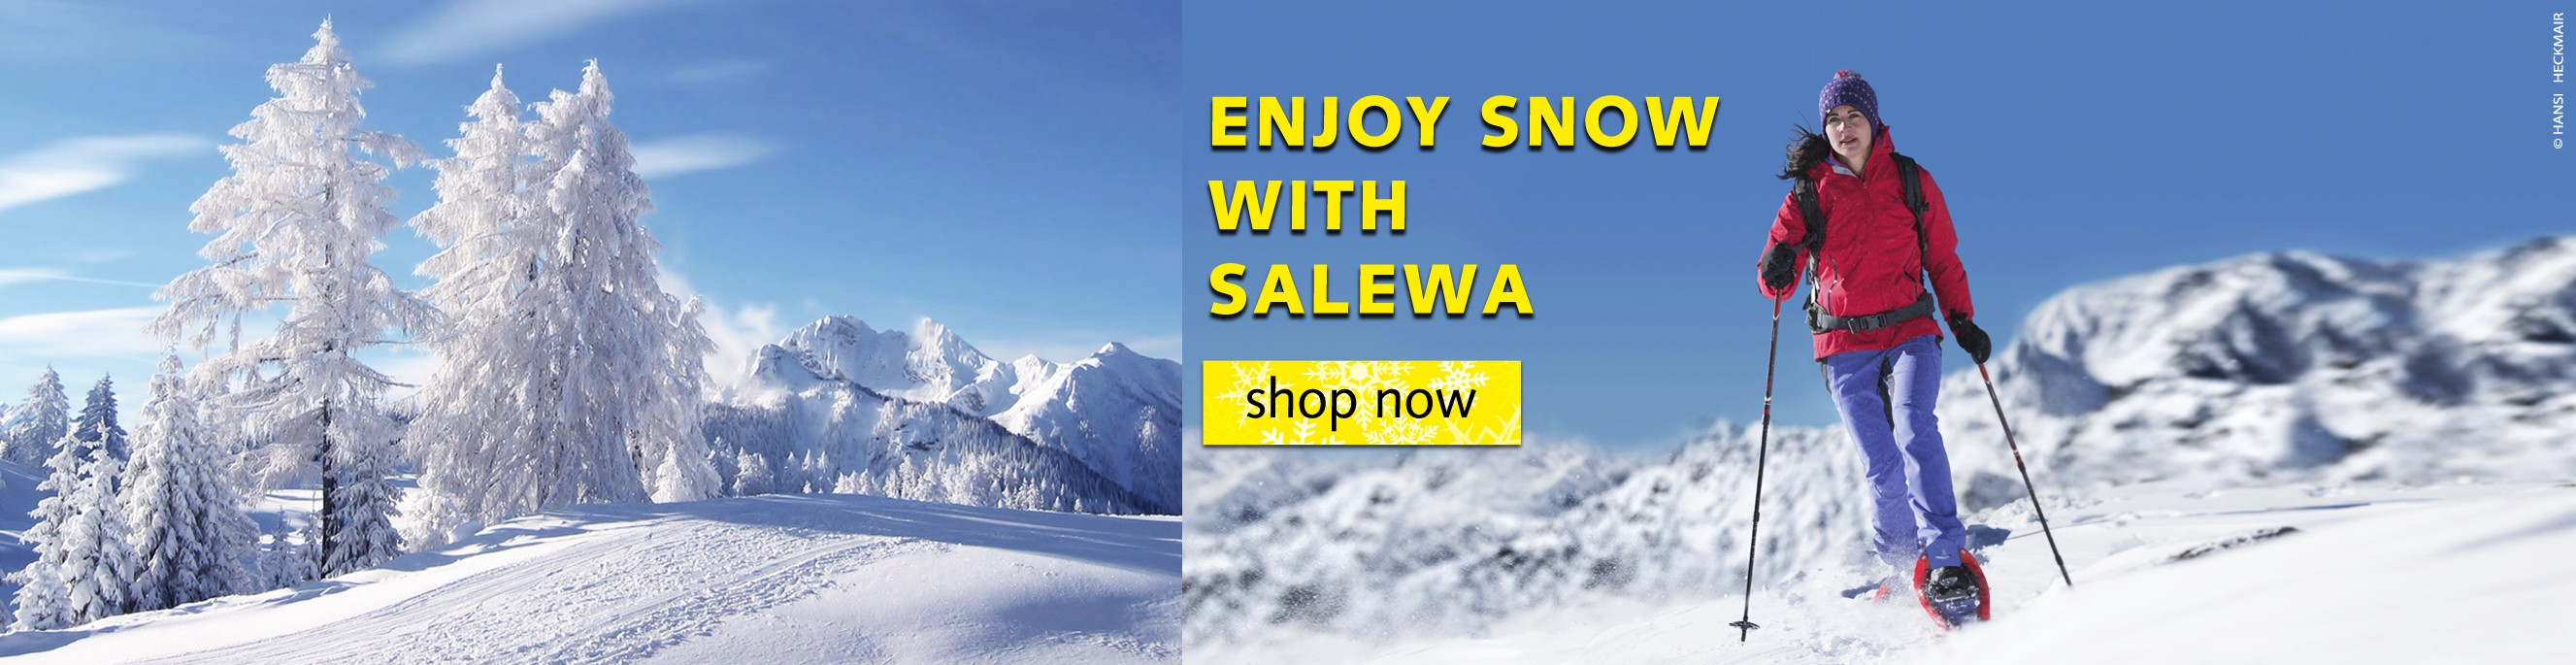 Enjoy Snow with Salewa